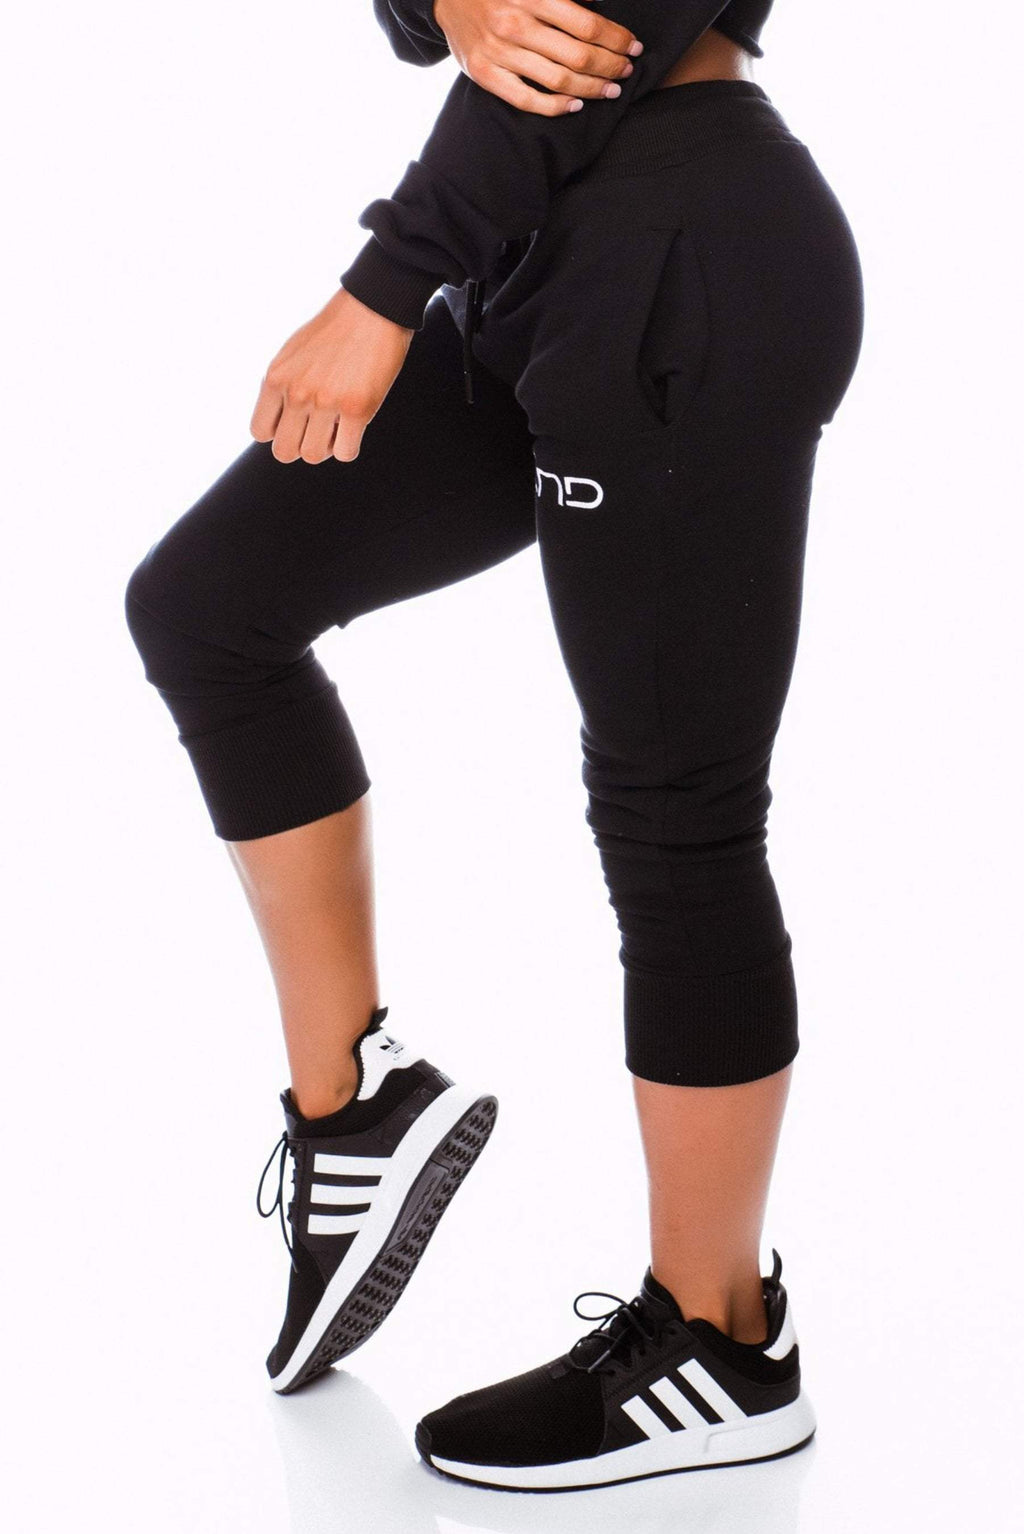 BALLER TRACKIES - BLACK - Be Activewear